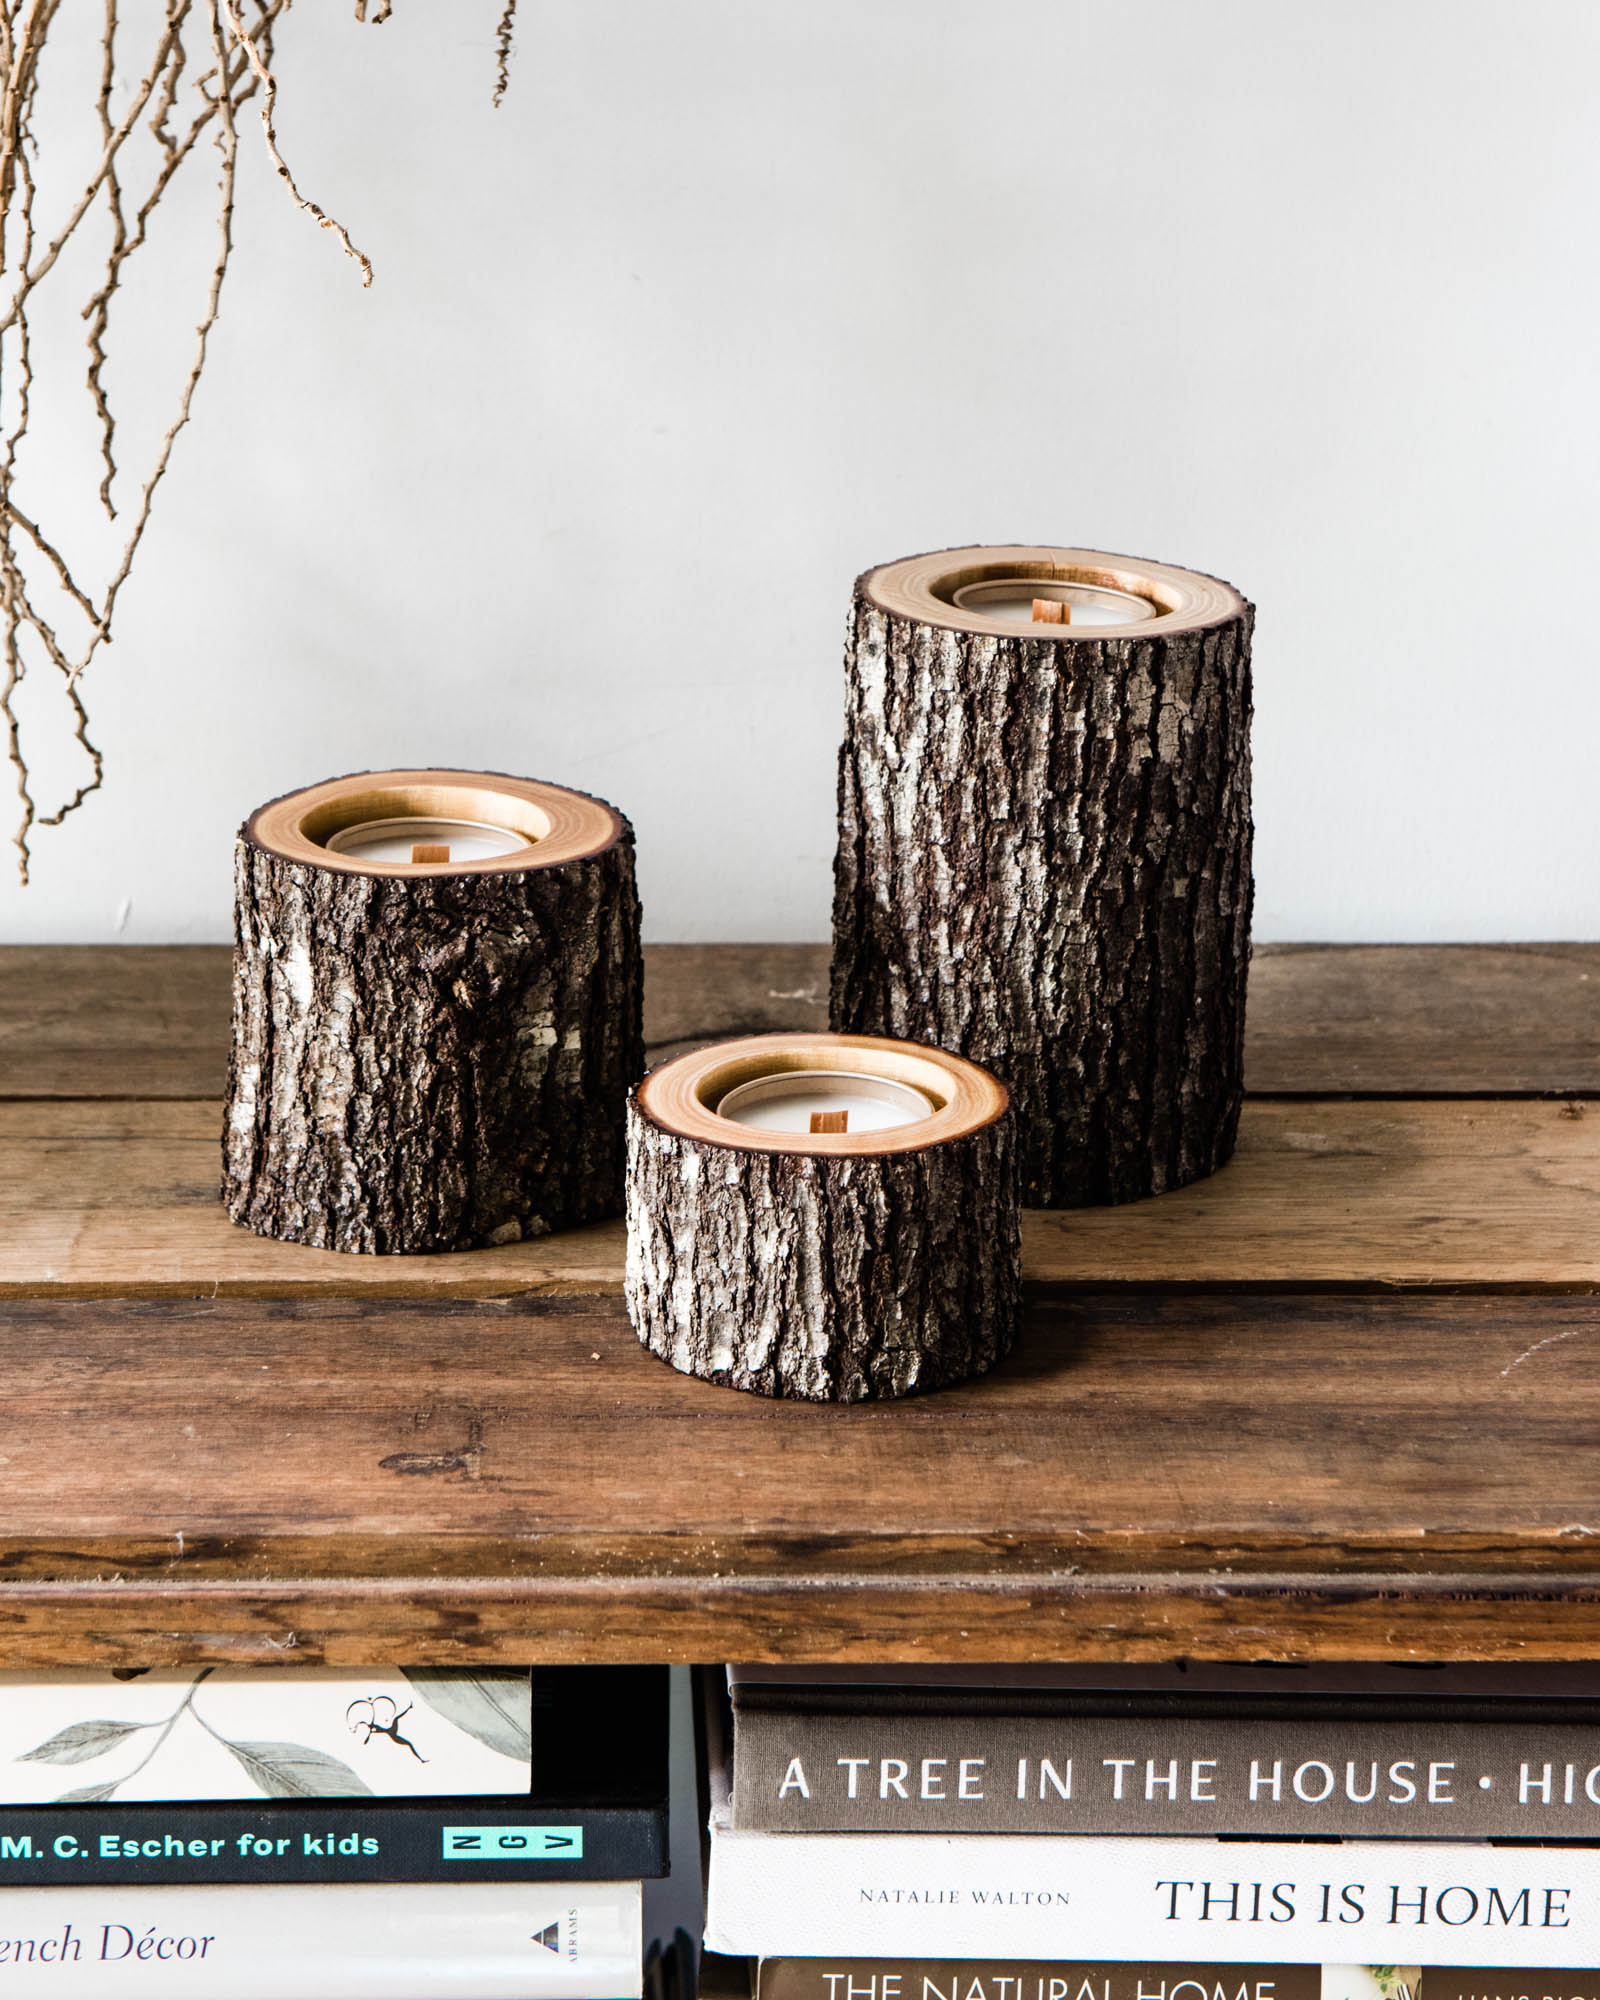 Web-hannah puechmarin-stump and co natural candles lifestyle photography-6170.jpg